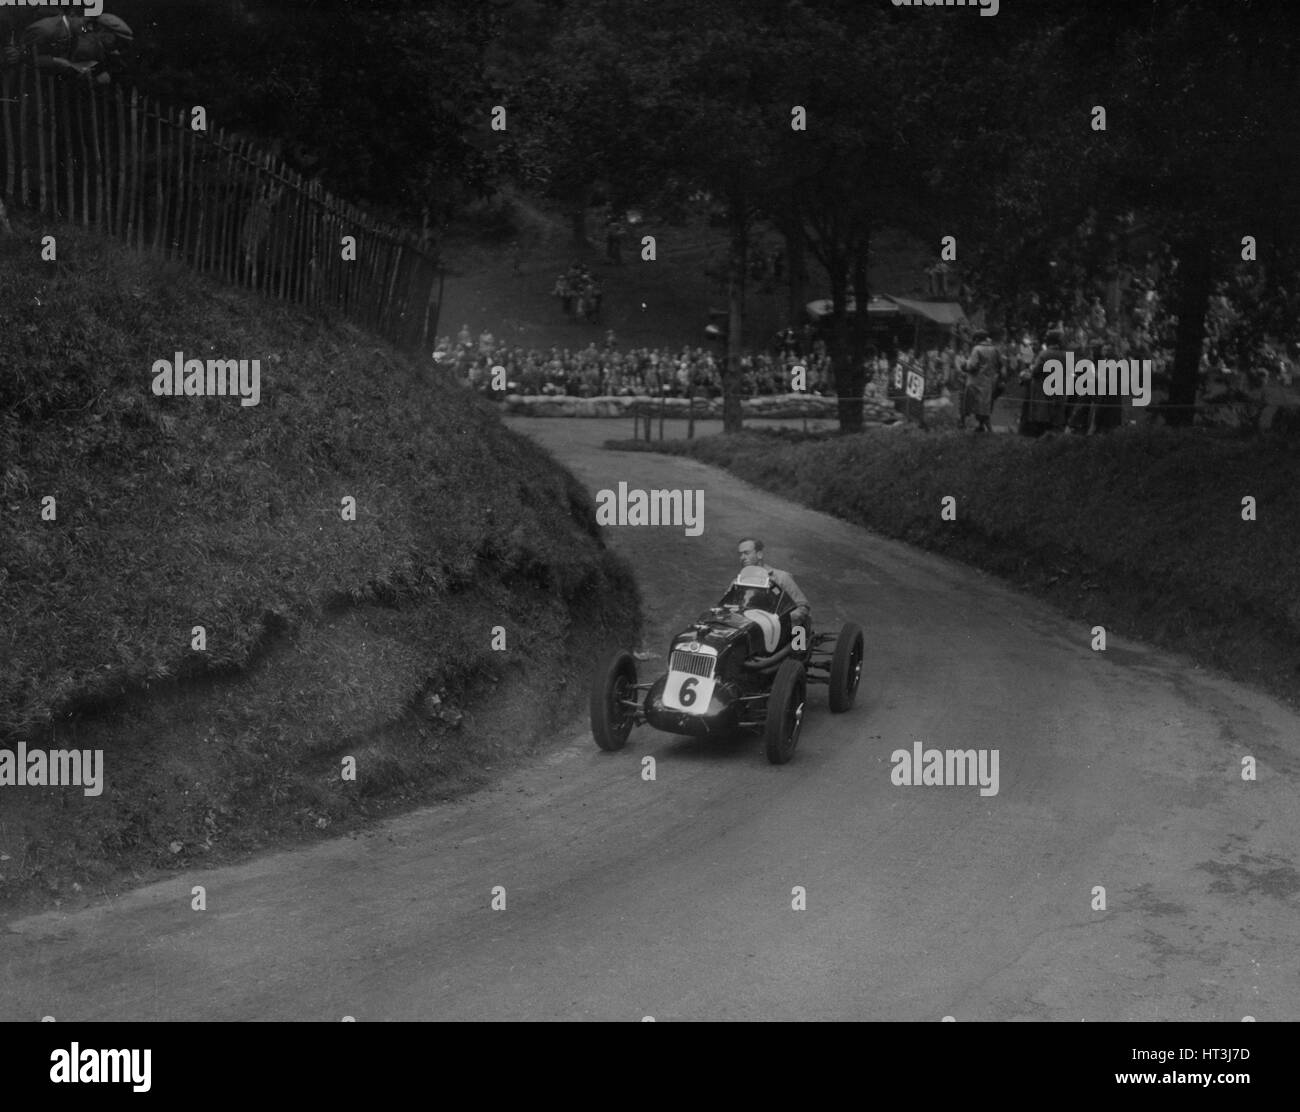 MG R type of Ian Connell competing in the Shelsley Walsh Hillclimb, Worcestershire, 1935. Artist: Bill Brunell. - Stock Image